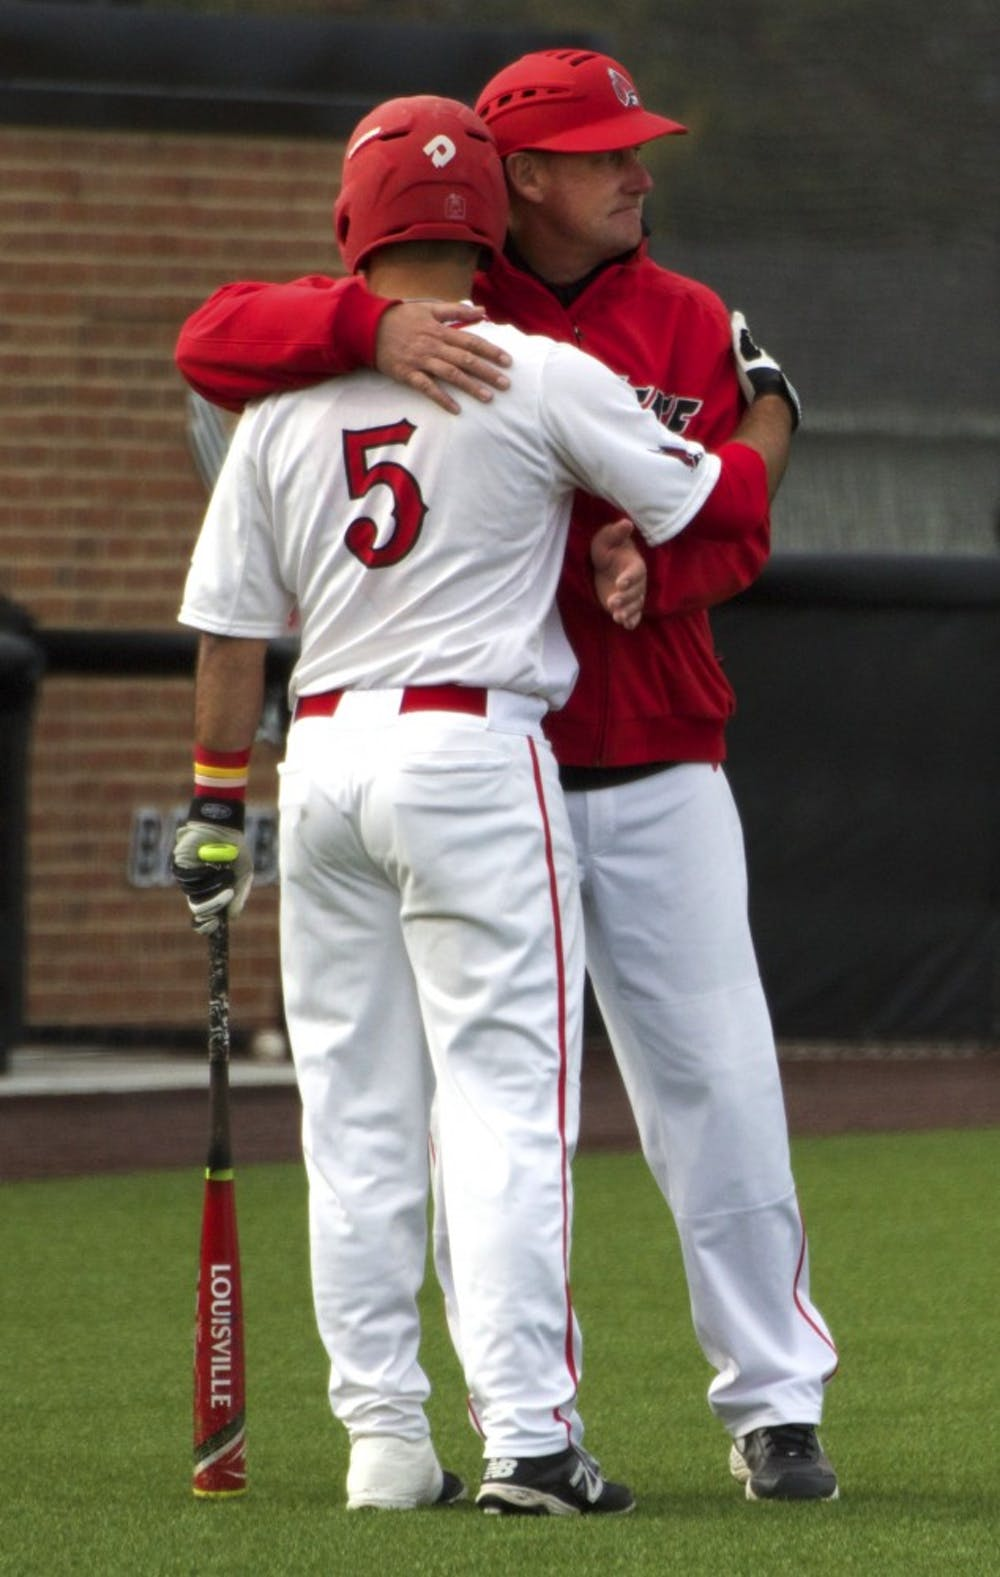 Ball State's head baseball coach Rich Maloney gives senior infielder Ryan Spaulding a hug while the players from Ohio take a time out in the game on April 1. DN PHOTO GRACE RAMEY